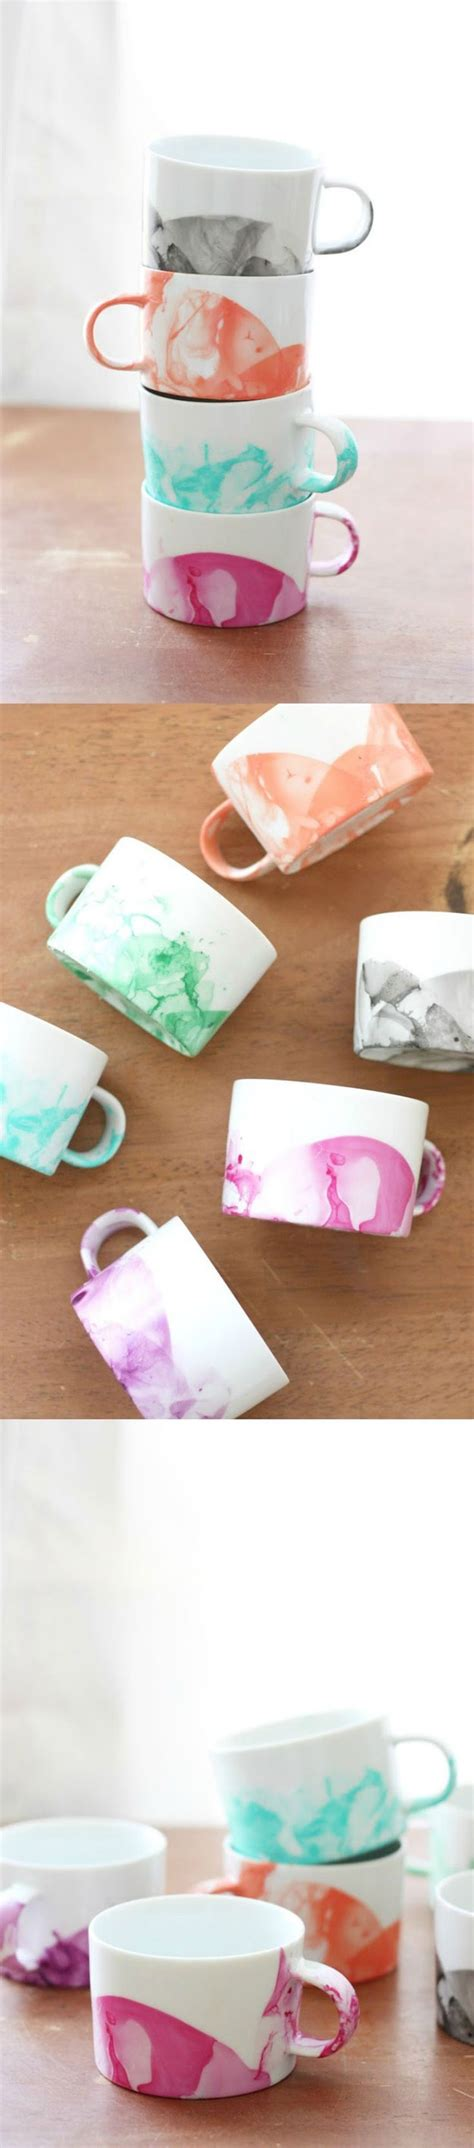 cool diy craft projects 47 crafts that aren t impossible diy